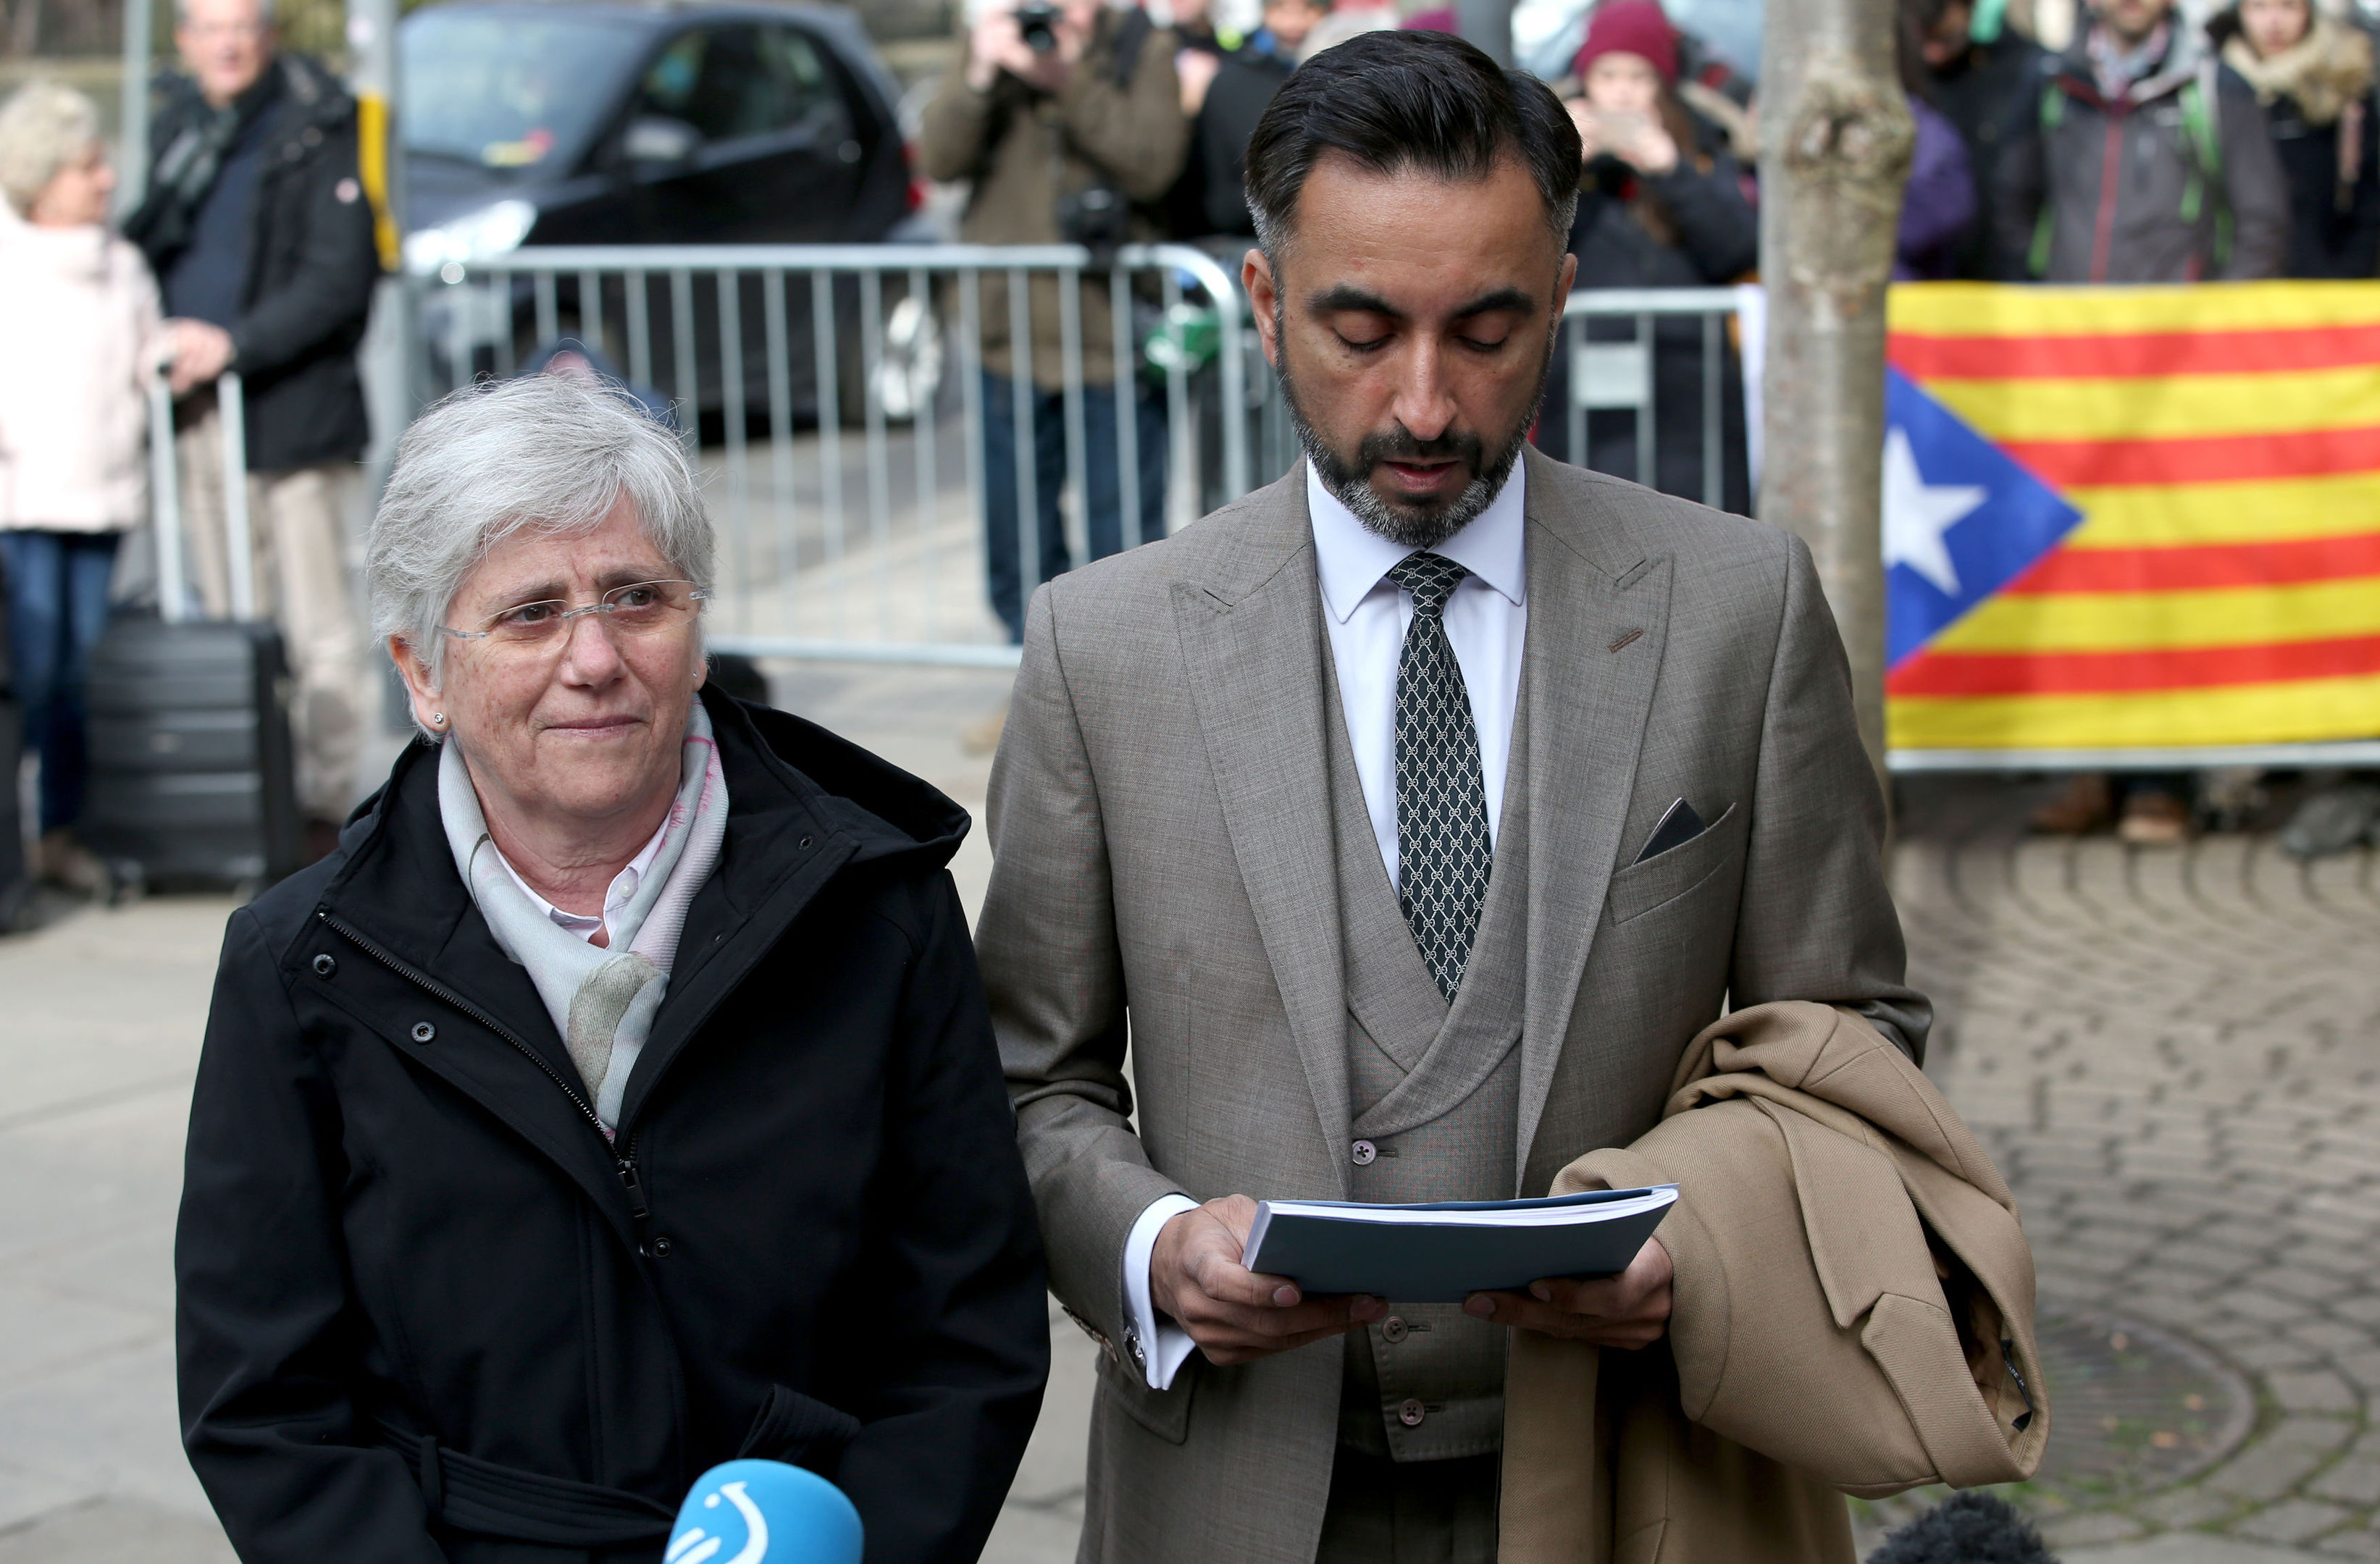 Former Catalan Minister Professor Clara Ponsati who is facing extradition to Spain attends Edinburgh police station with her lawyer Aamer Anwar.